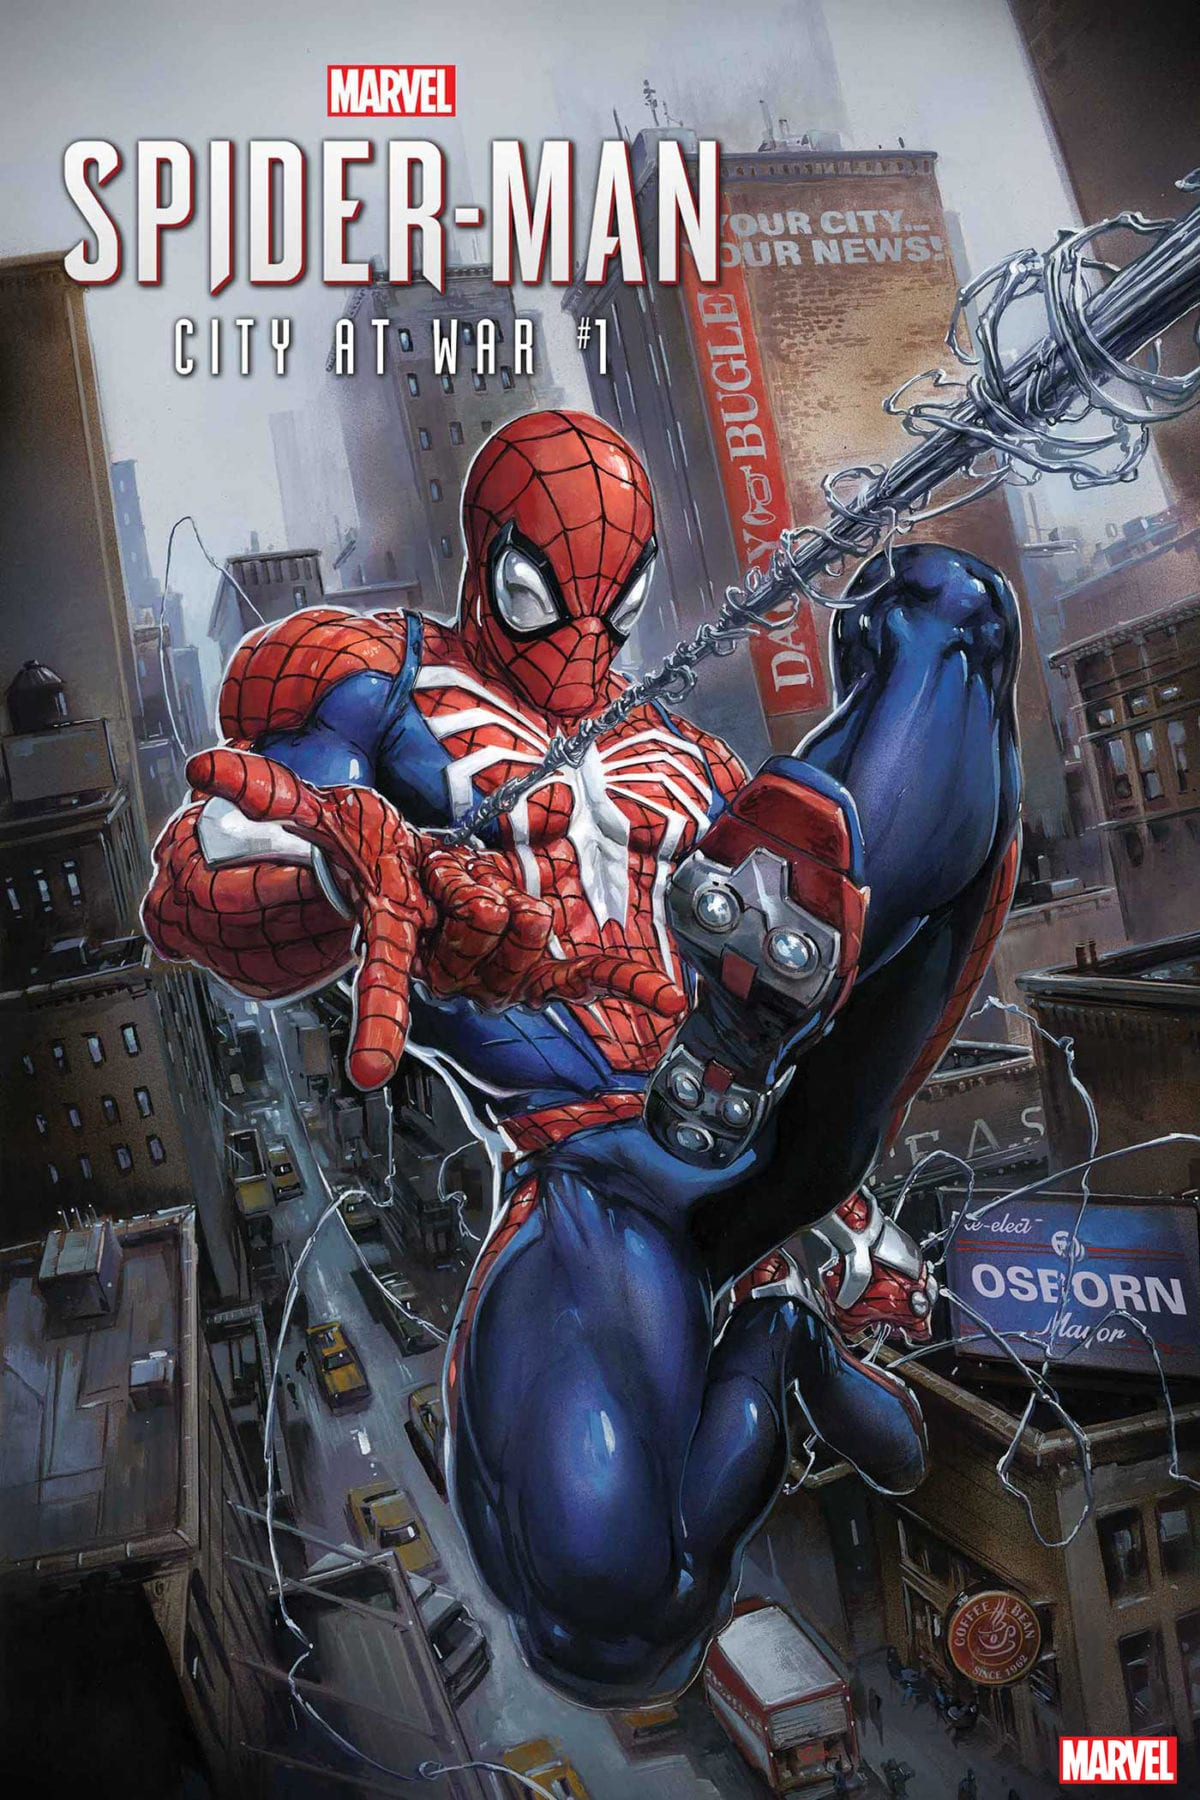 Marvel's Spider-Man swings into the pages of Marvel Comics with City of War